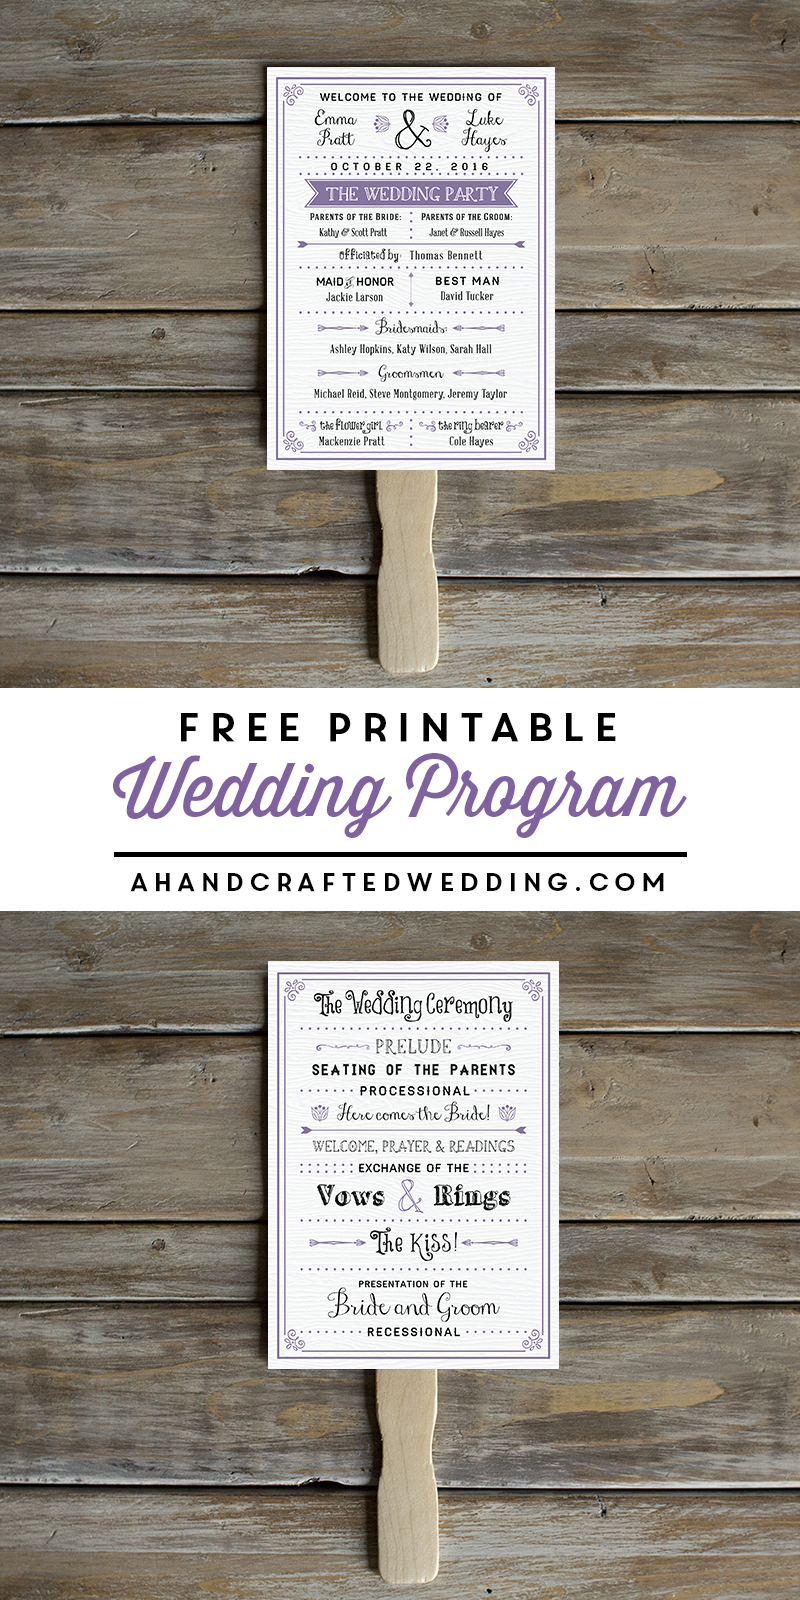 wedding program fans Download and print this FREE DIY Wedding Program and print as many copies as you need